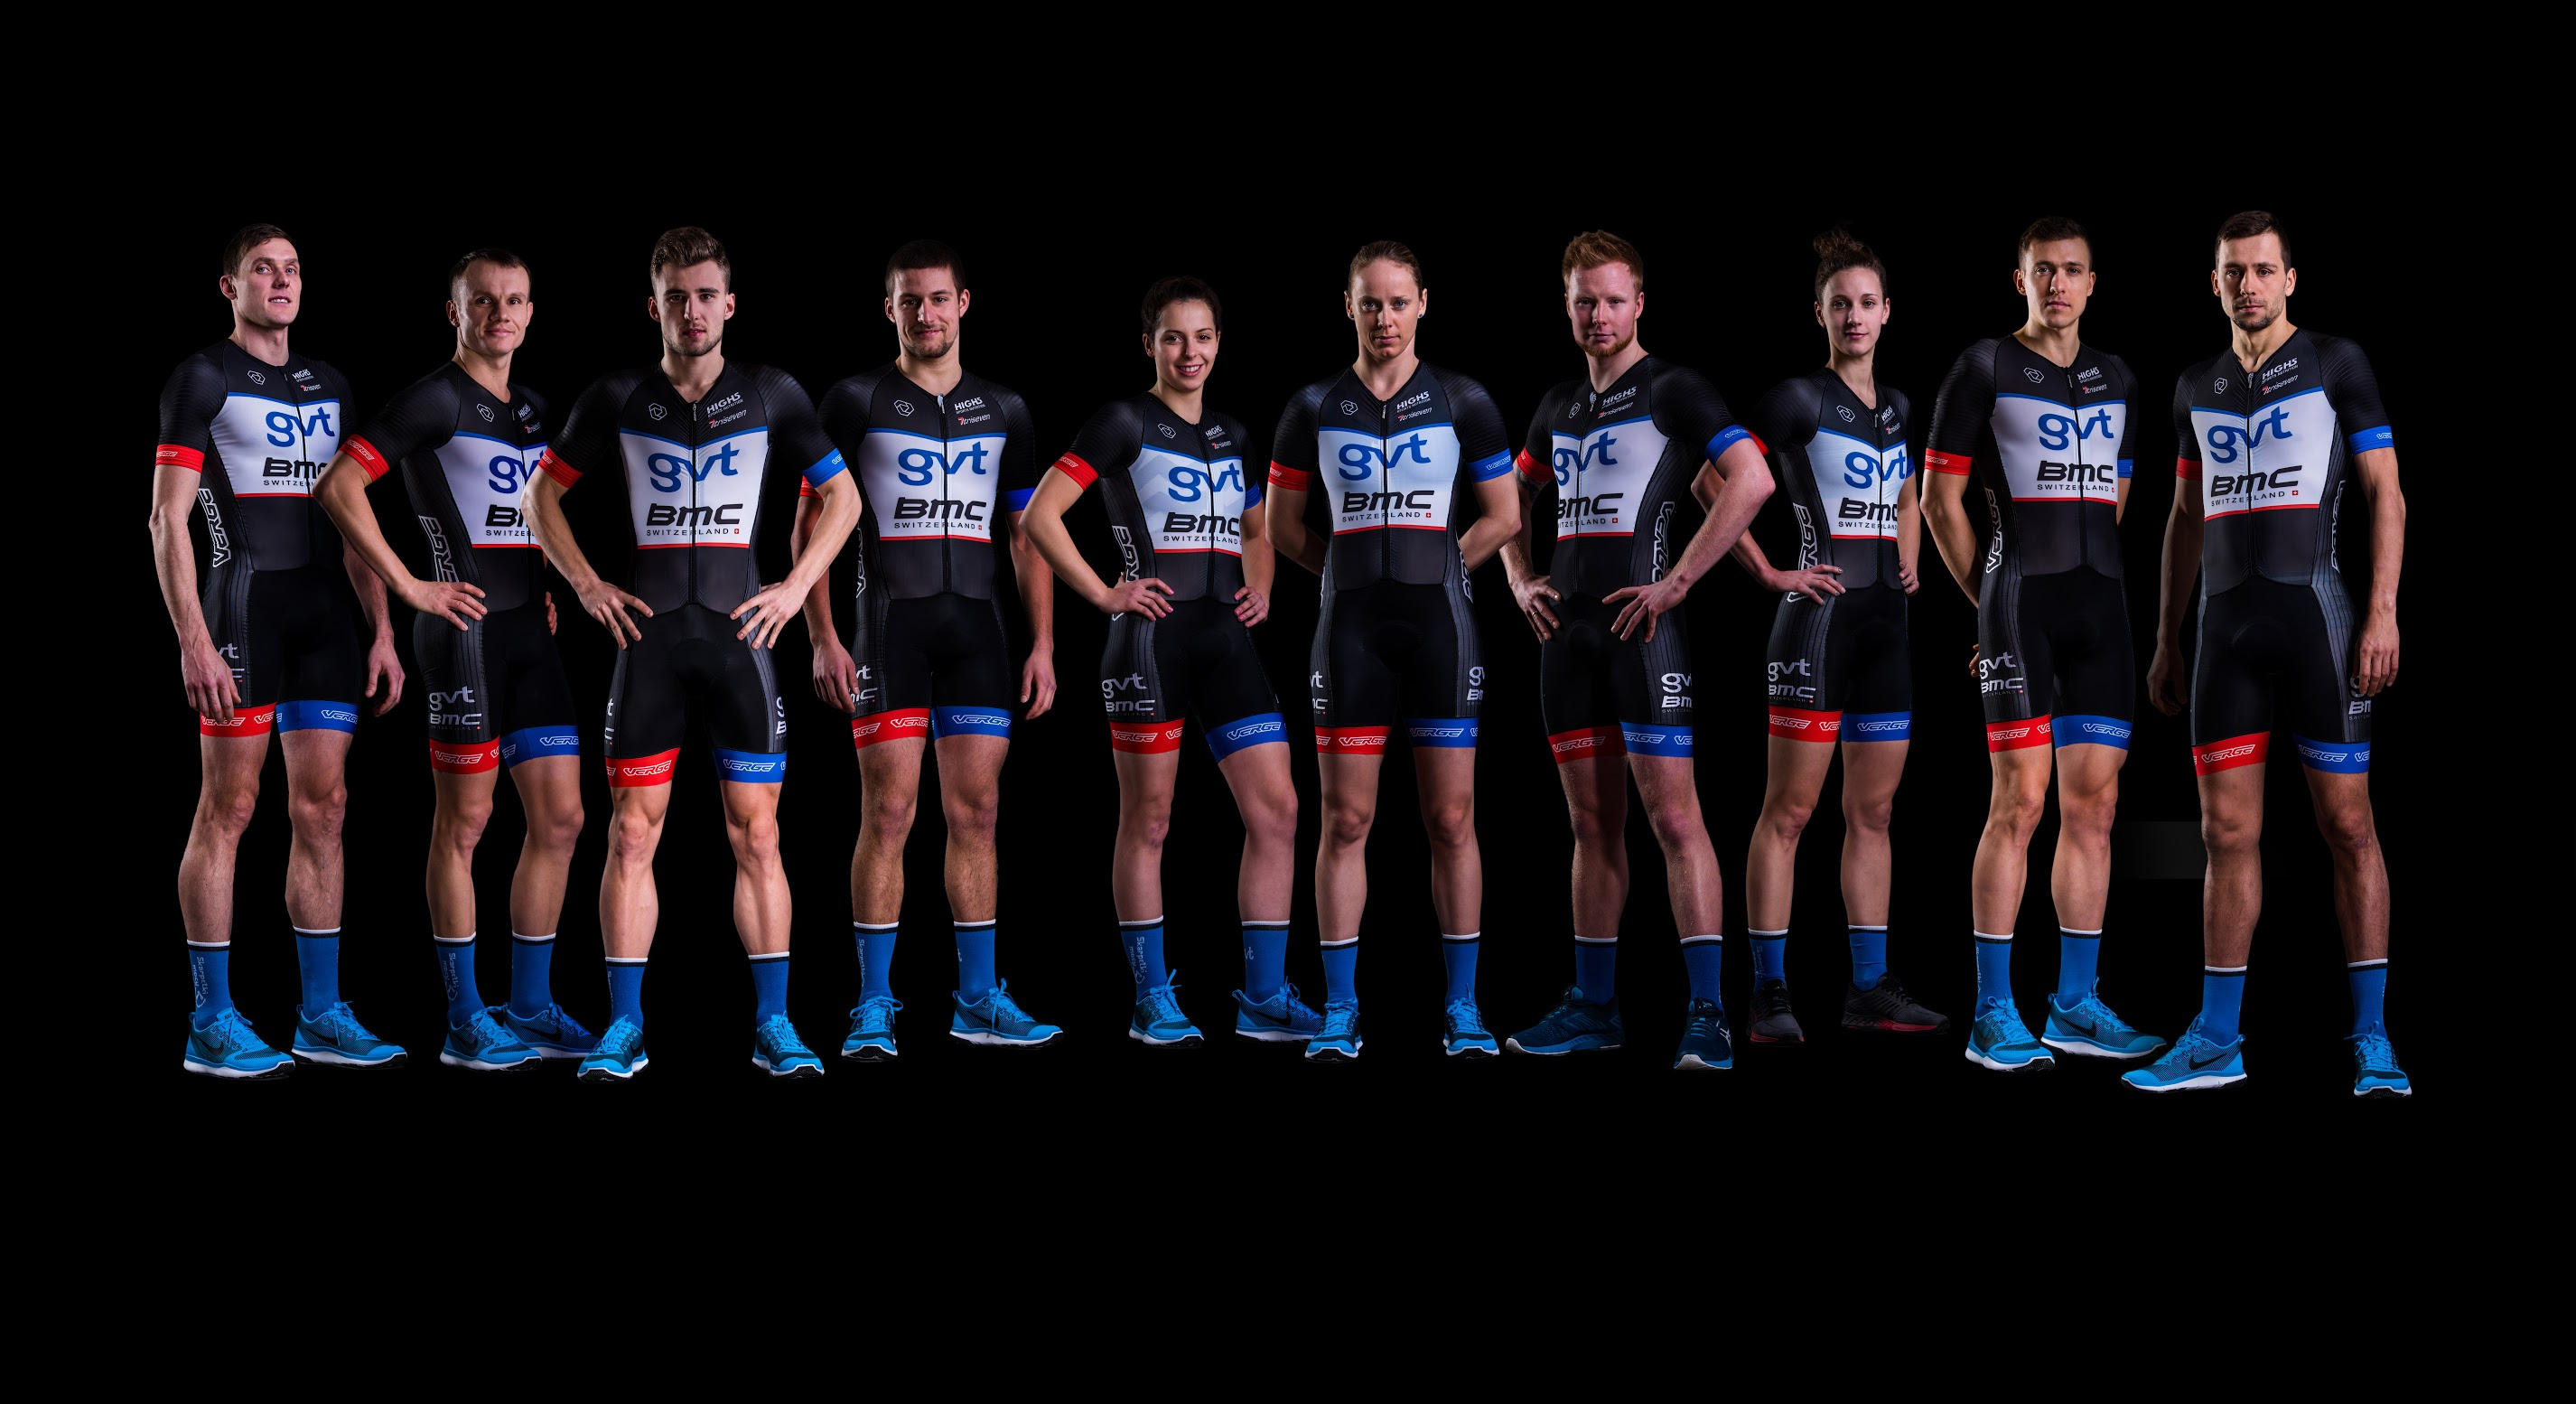 BMC GVT TEAM